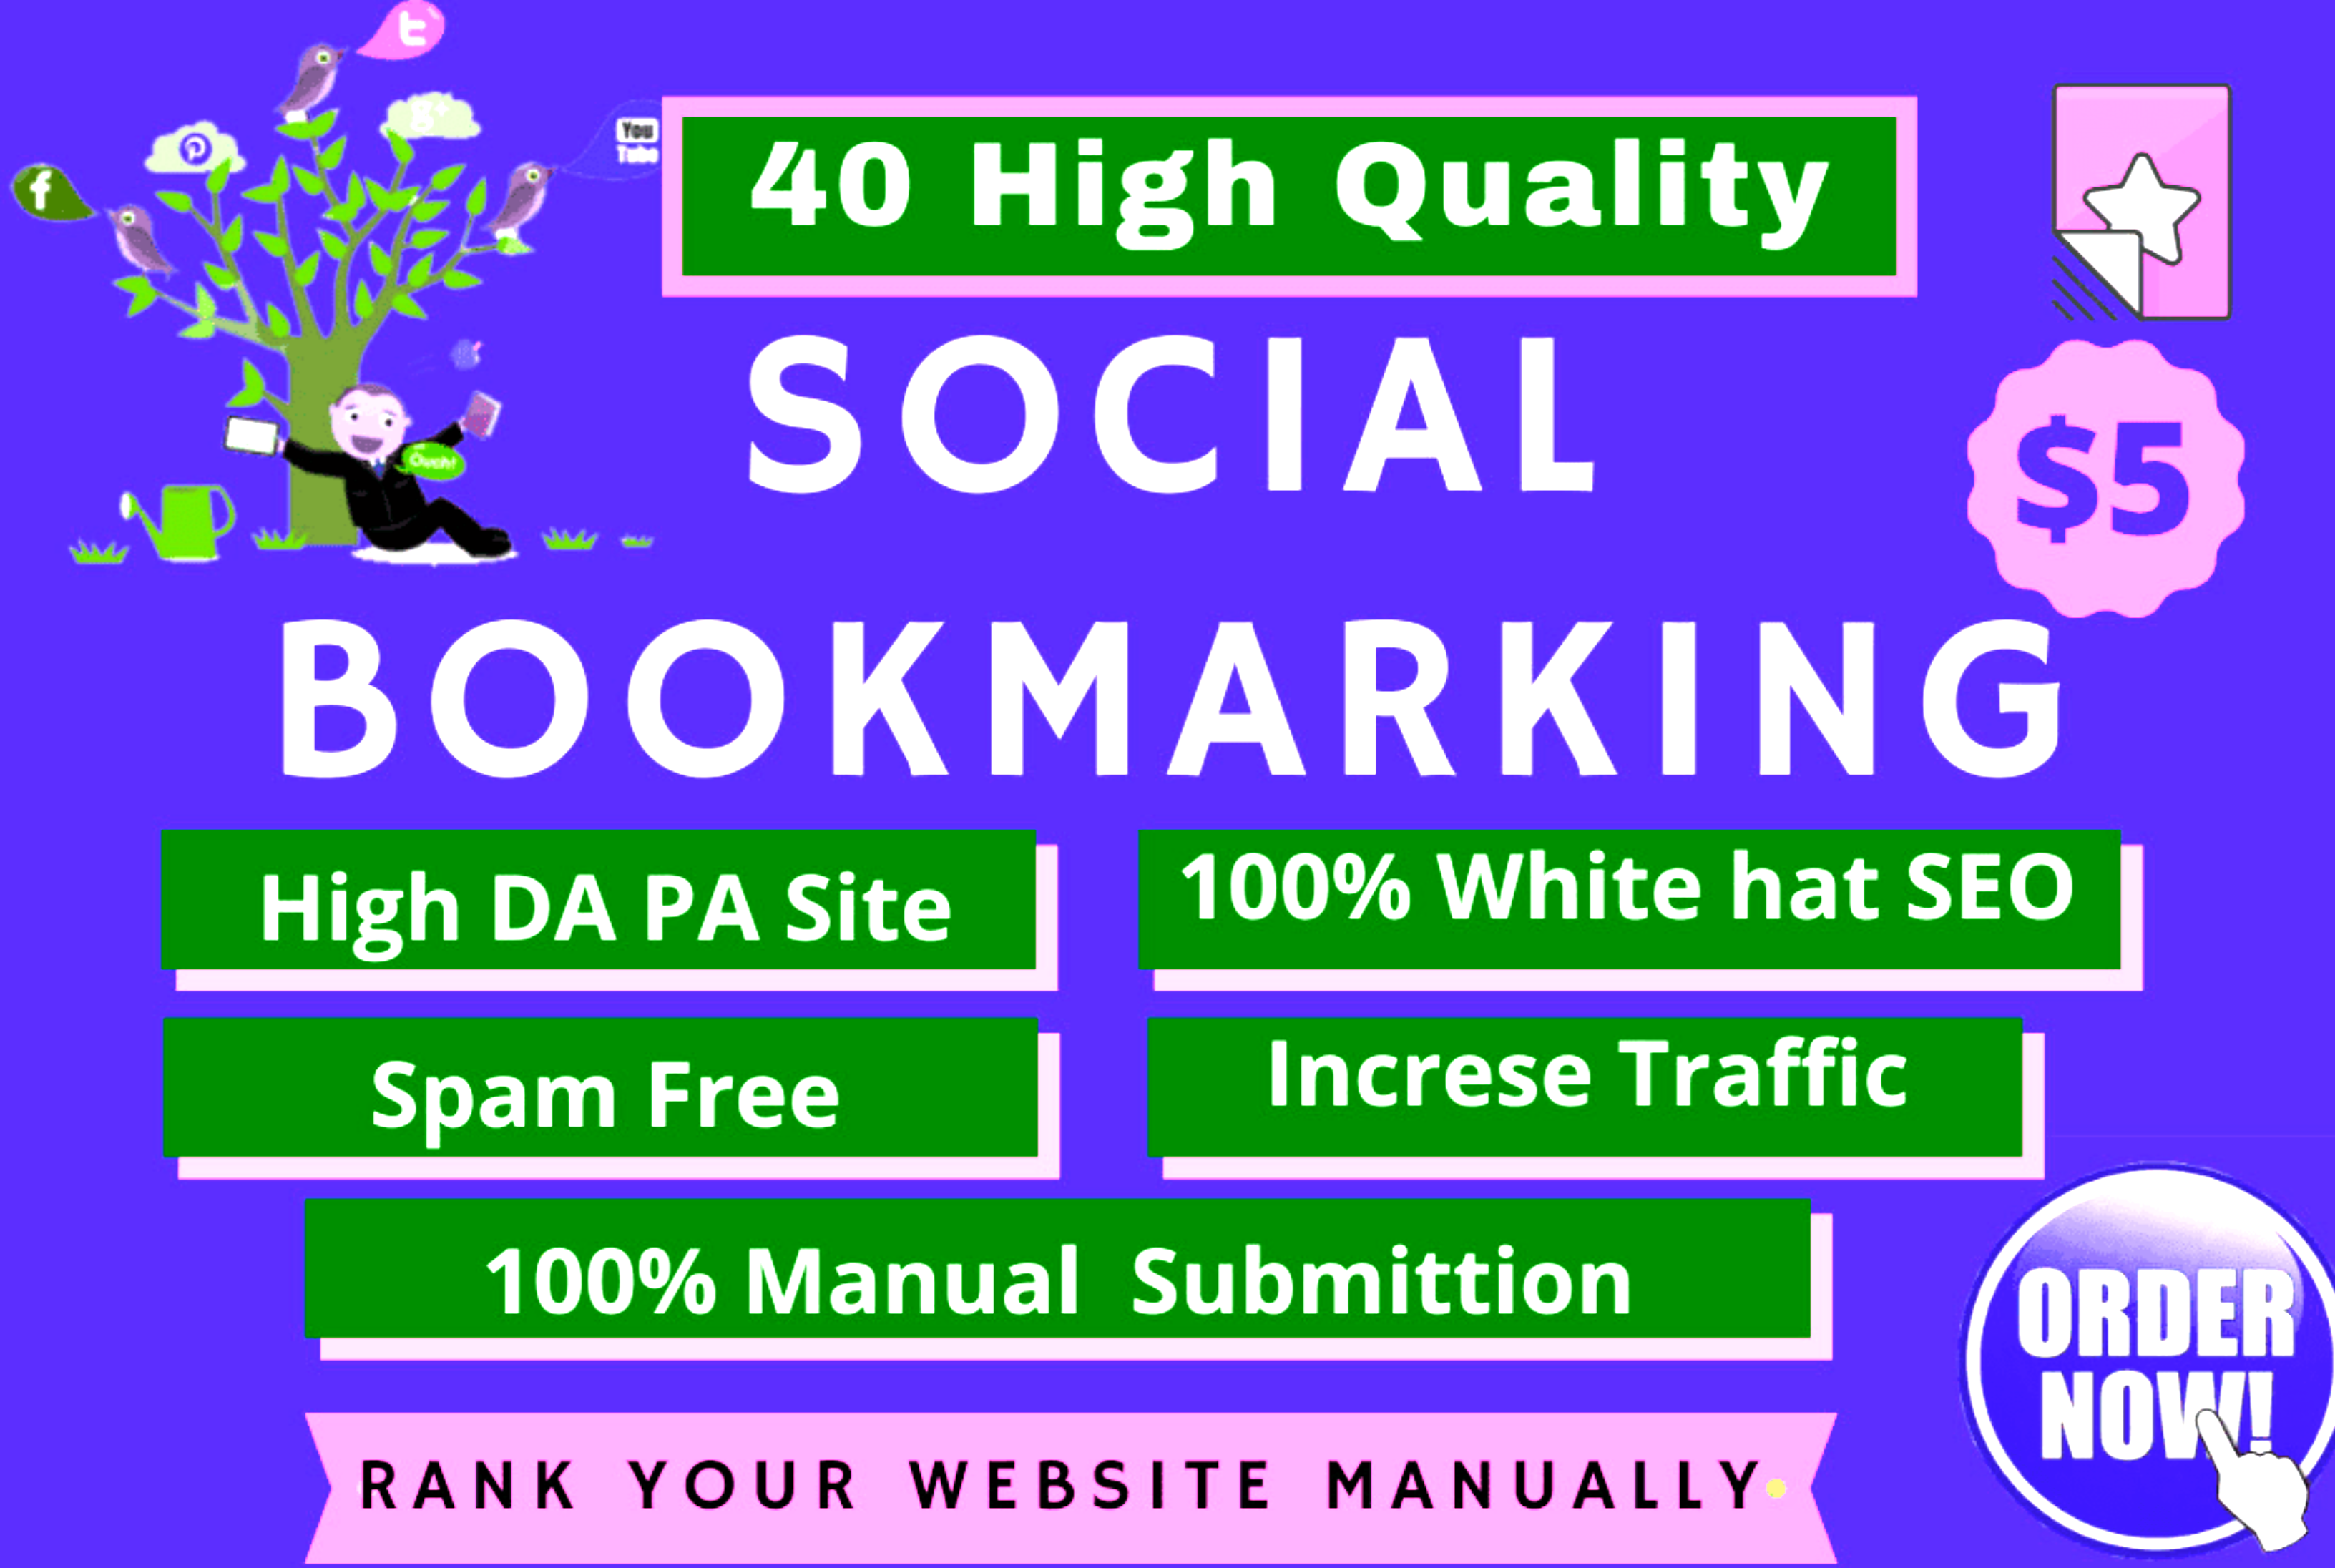 I will provide High quality 40 social bookmarking backlinks to your website.